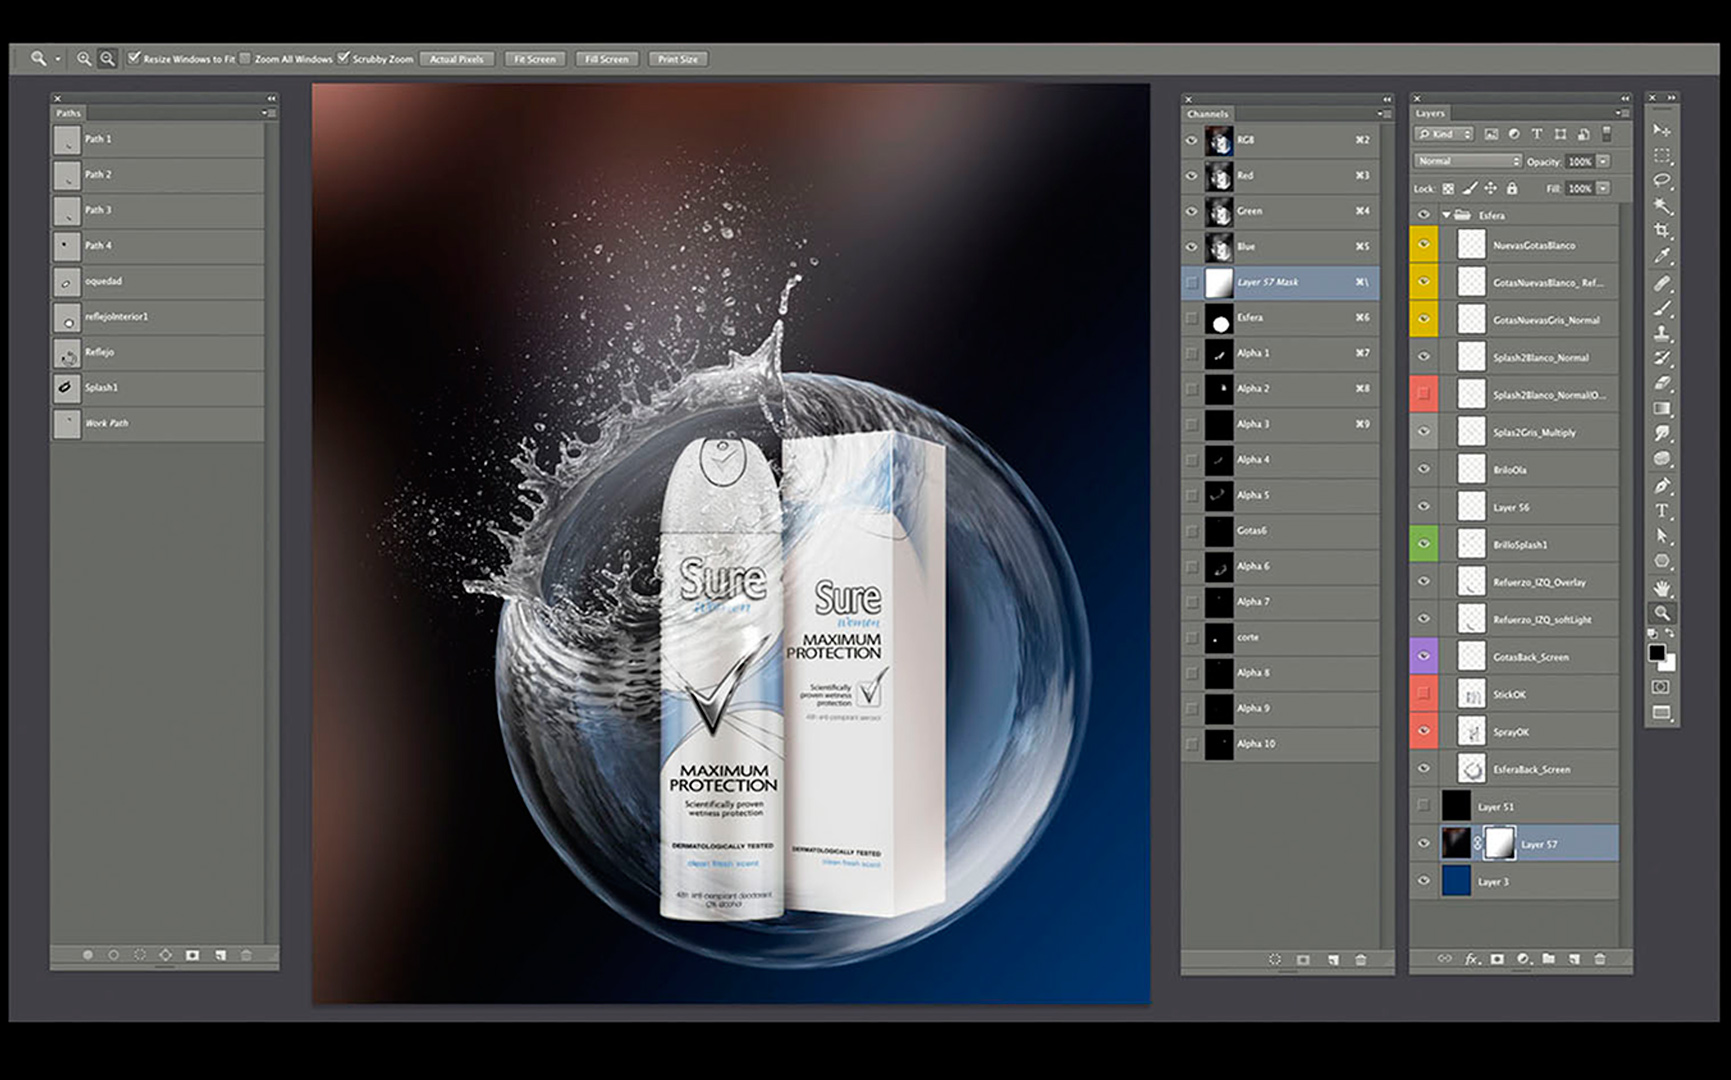 Rexona Sure / Lola-mullenlowem Madrid / International campaign / Photo retouching and illustration